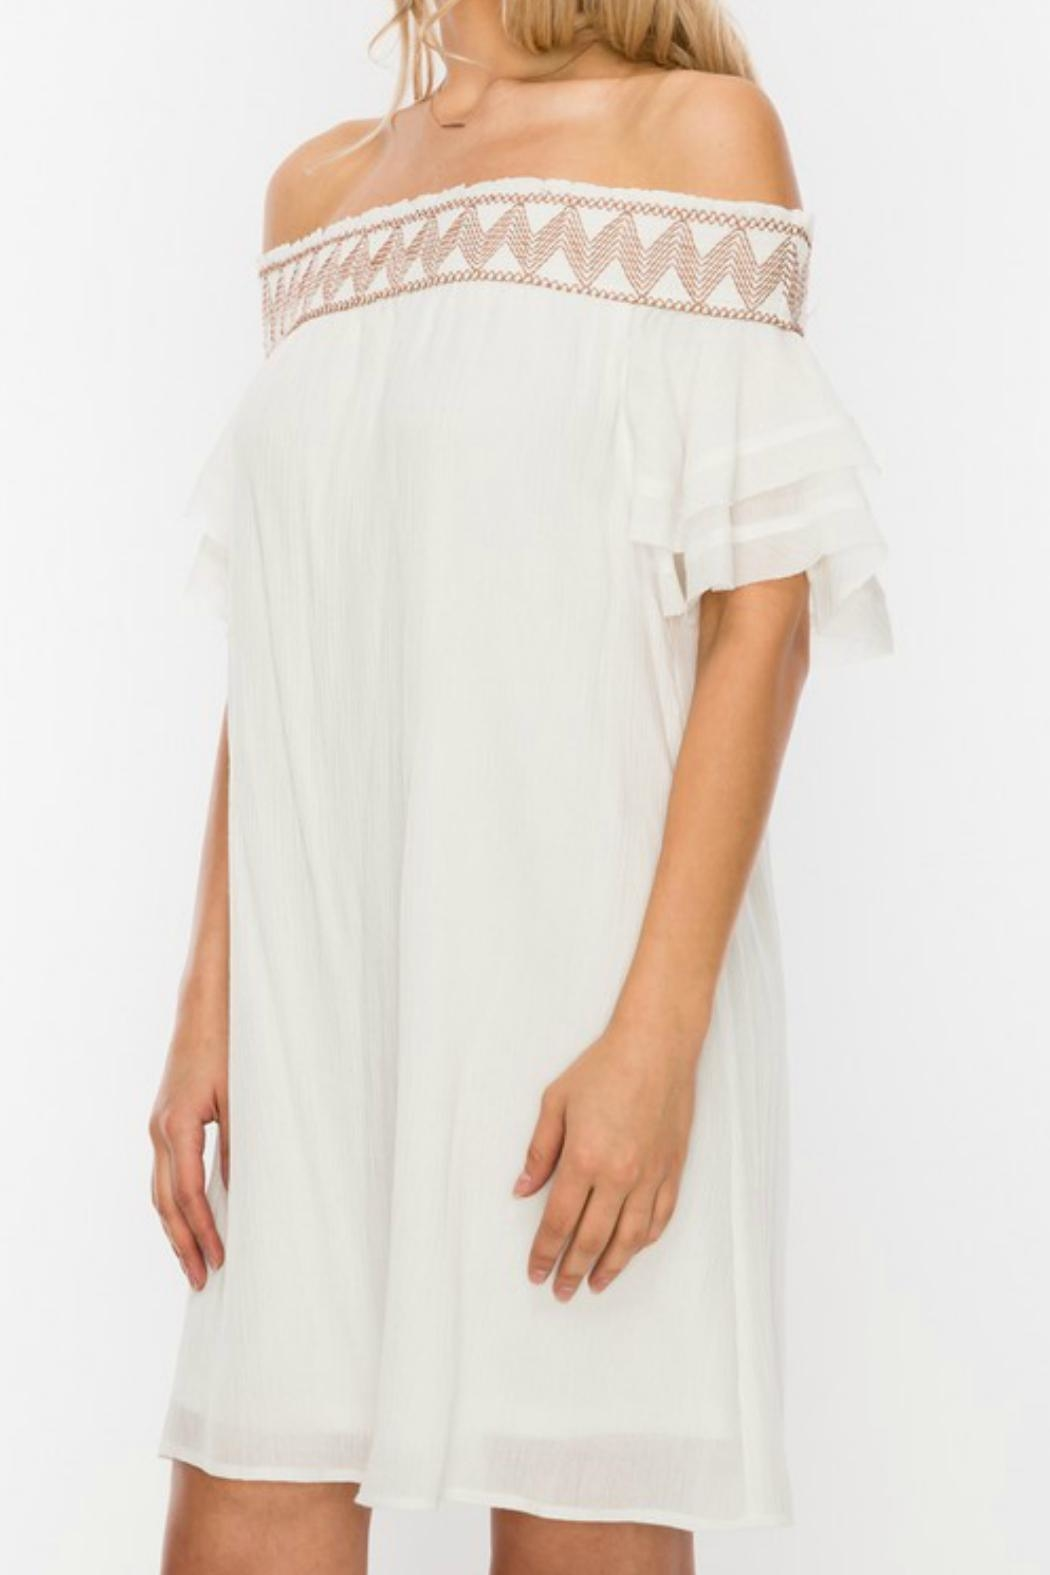 ALB Anchorage Embroidered Off-Shoulder Dress - Front Full Image